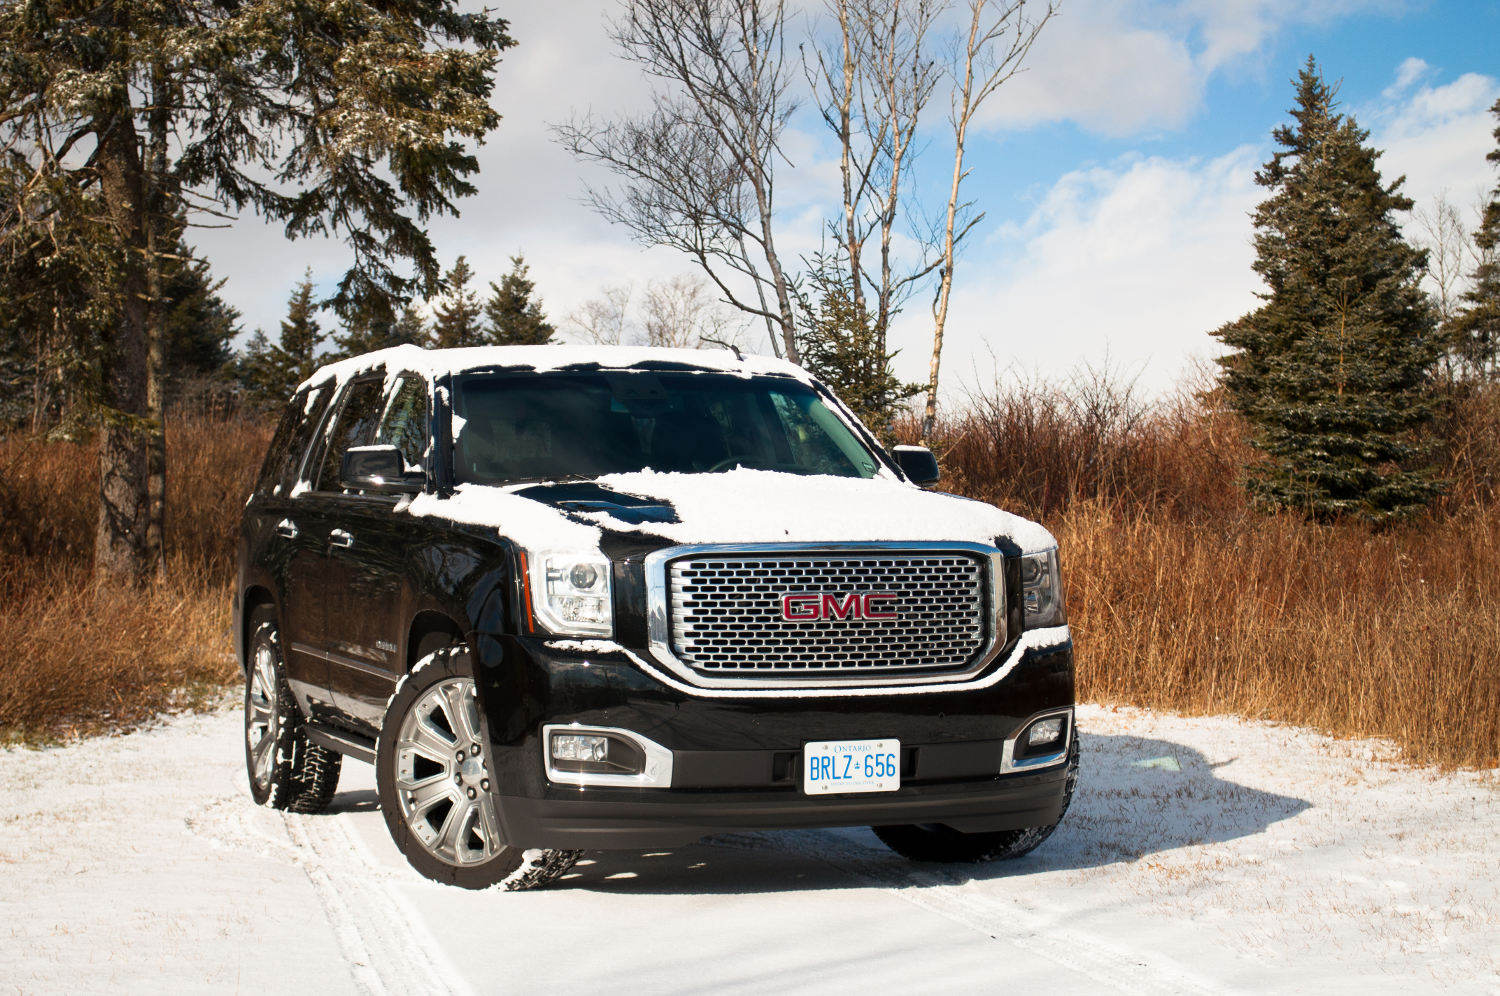 Comparison Gmc Yukon Denali 2016 Vs Mercedes Benz